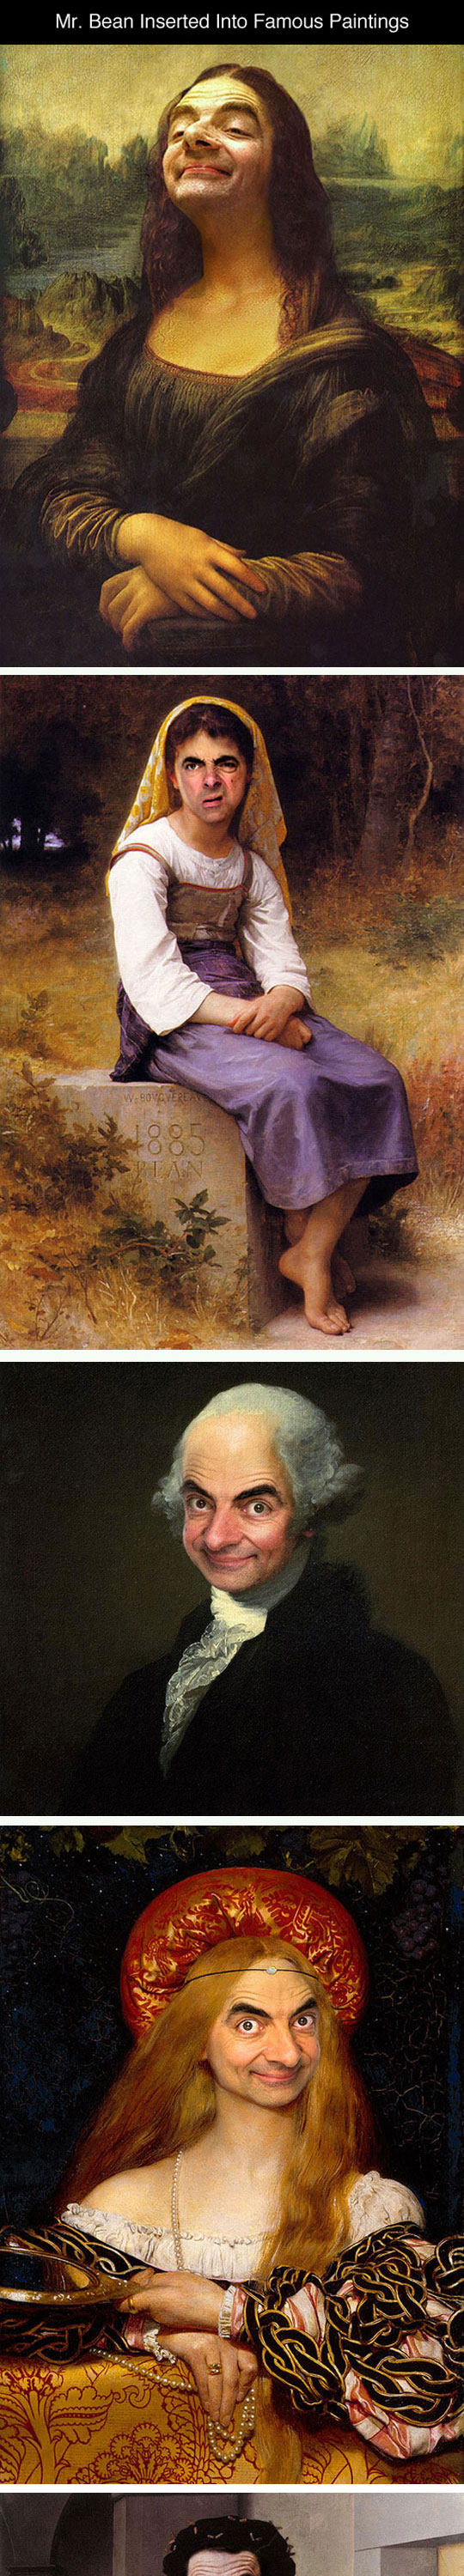 Photoshopping Mr. Bean Into Famous Paintings